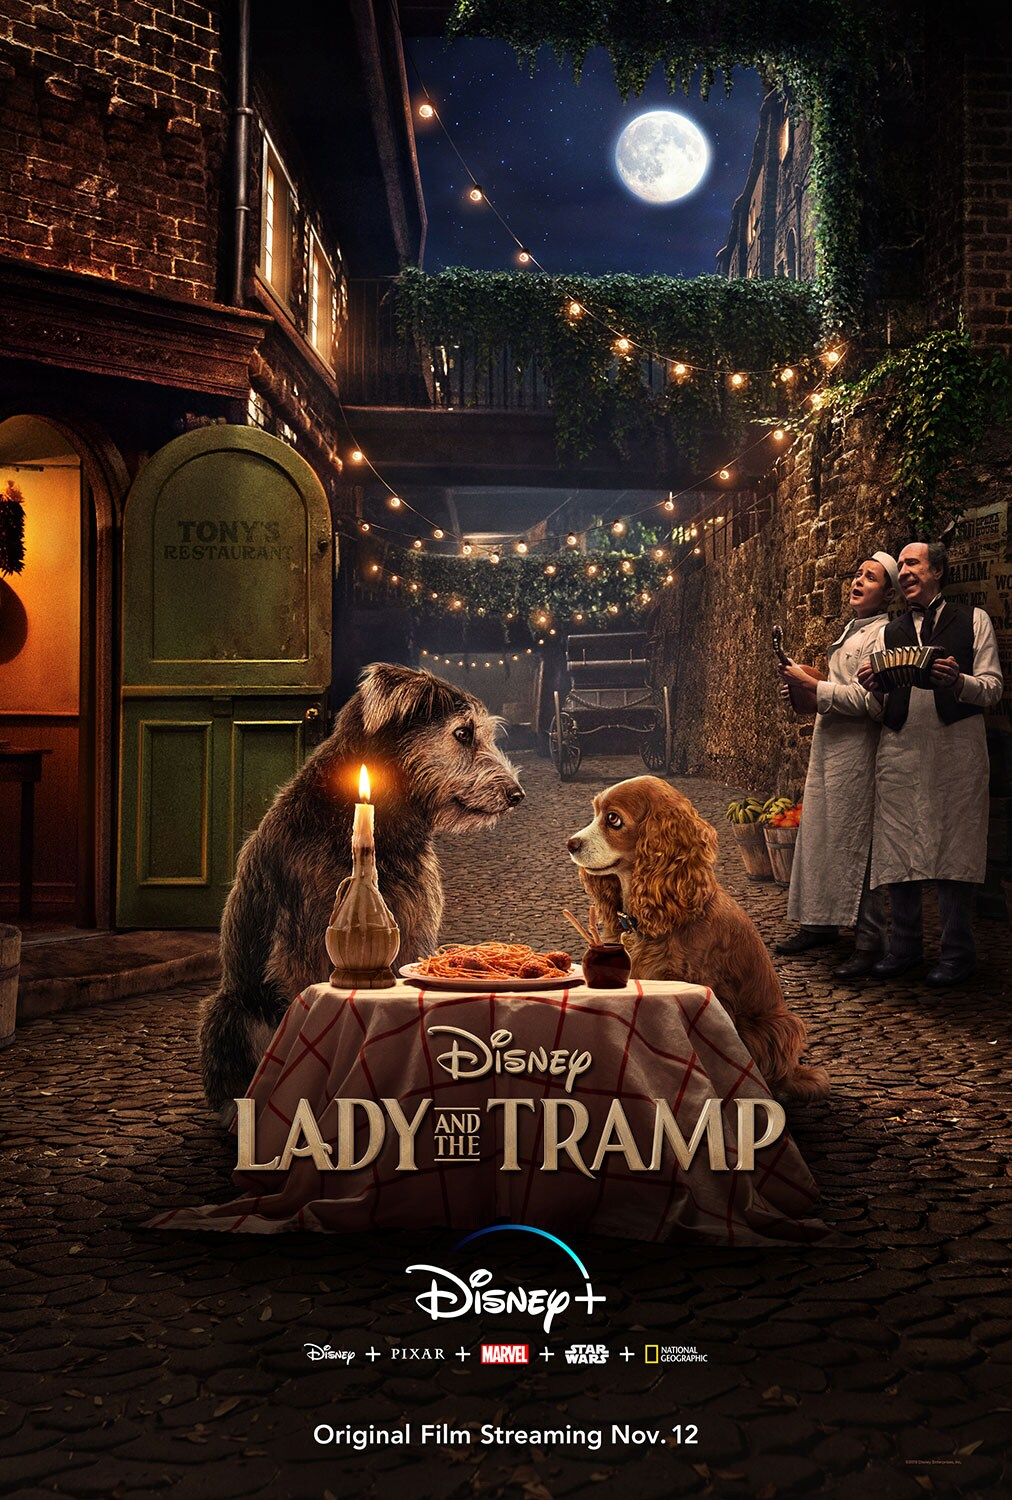 Tramp and Lady spaghetti dinner scene poster, Disney Lady and the Tramp on Disney Plus, Disney  plus Pixar plus Marvel plus Star Wars plus National Geographic. Original Film Streaming Nov 12.